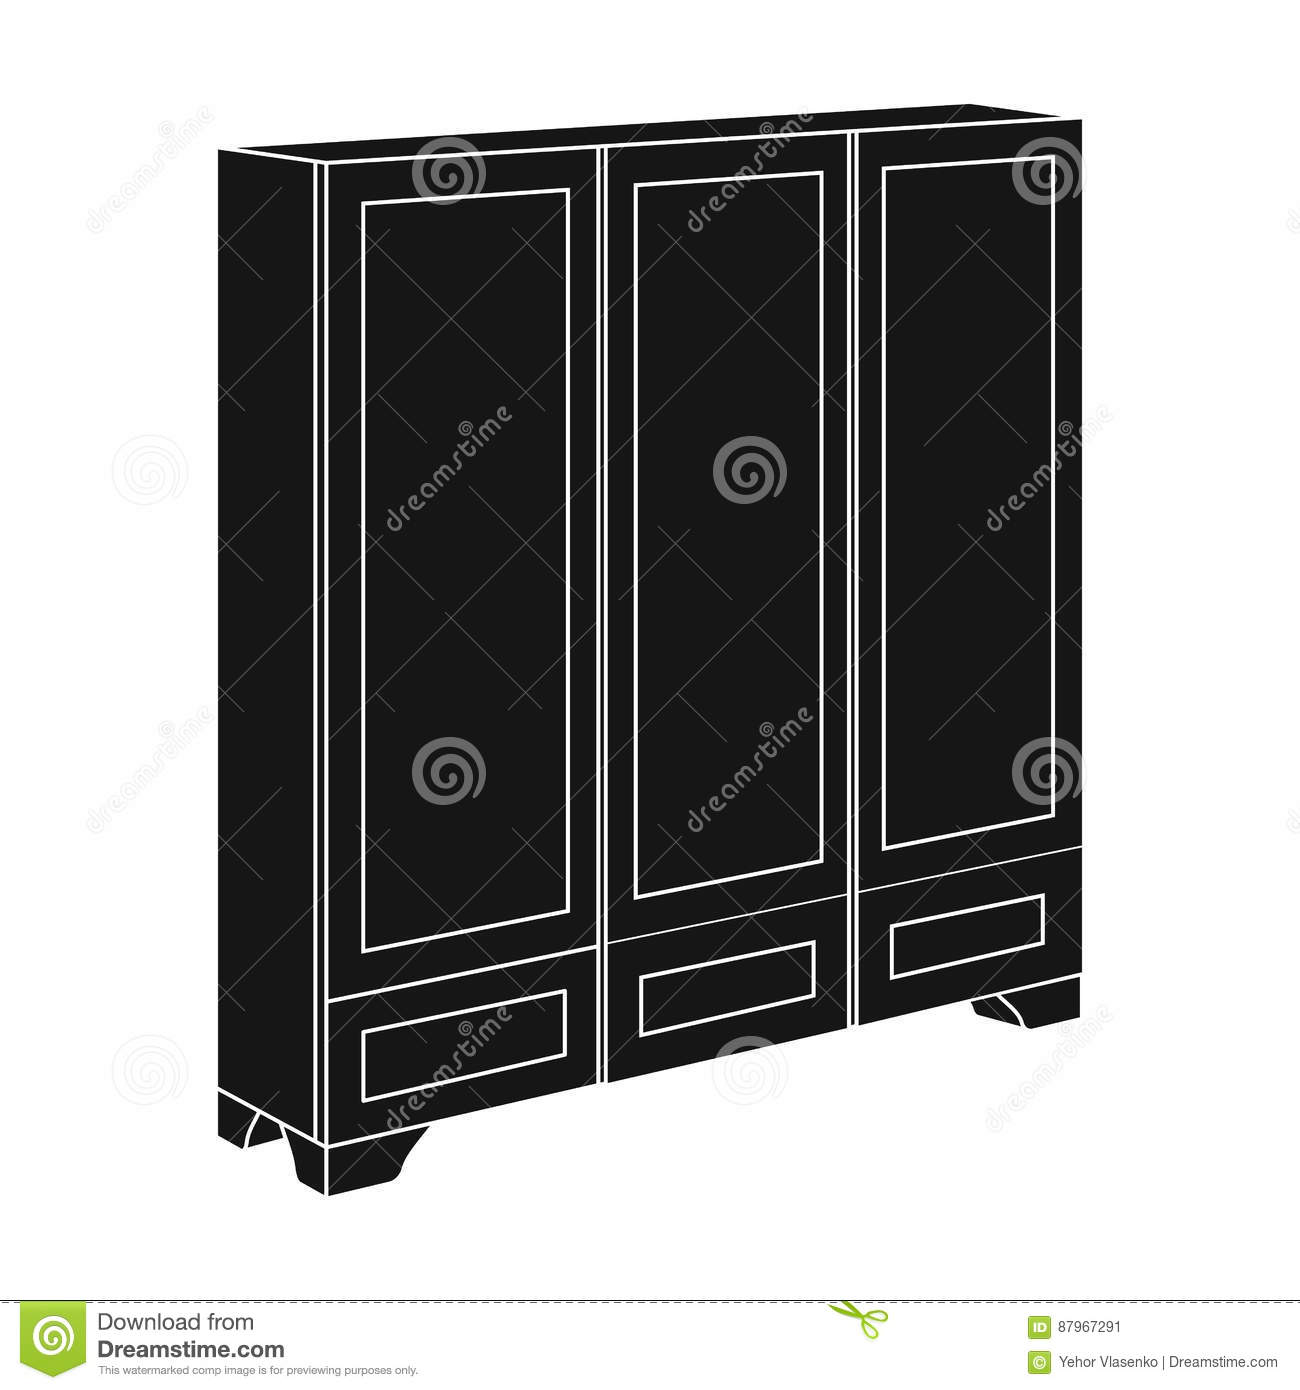 Marvelous Bedroom Wardrobe For Clothing Bedroom Furniture For Clothes Home Interior And Landscaping Oversignezvosmurscom